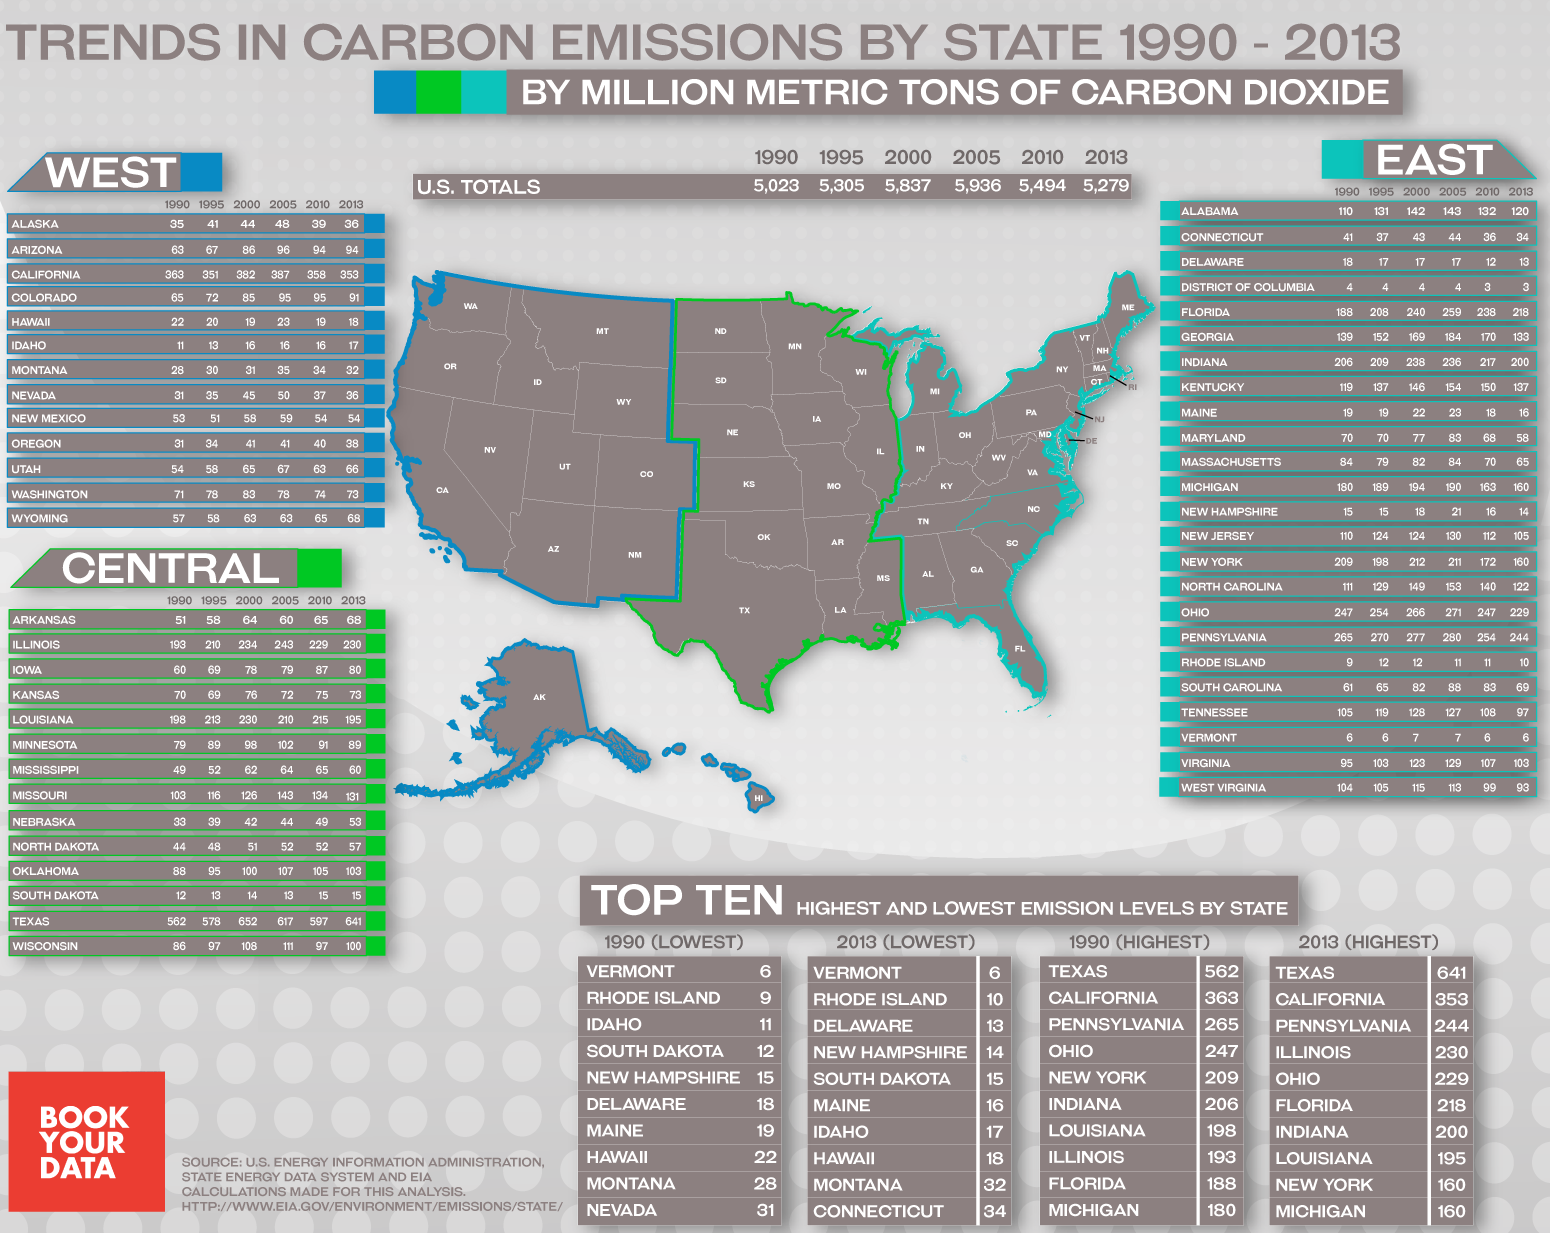 Trends in Carbon Emissions by State: 1990 - 2013 #Infographic